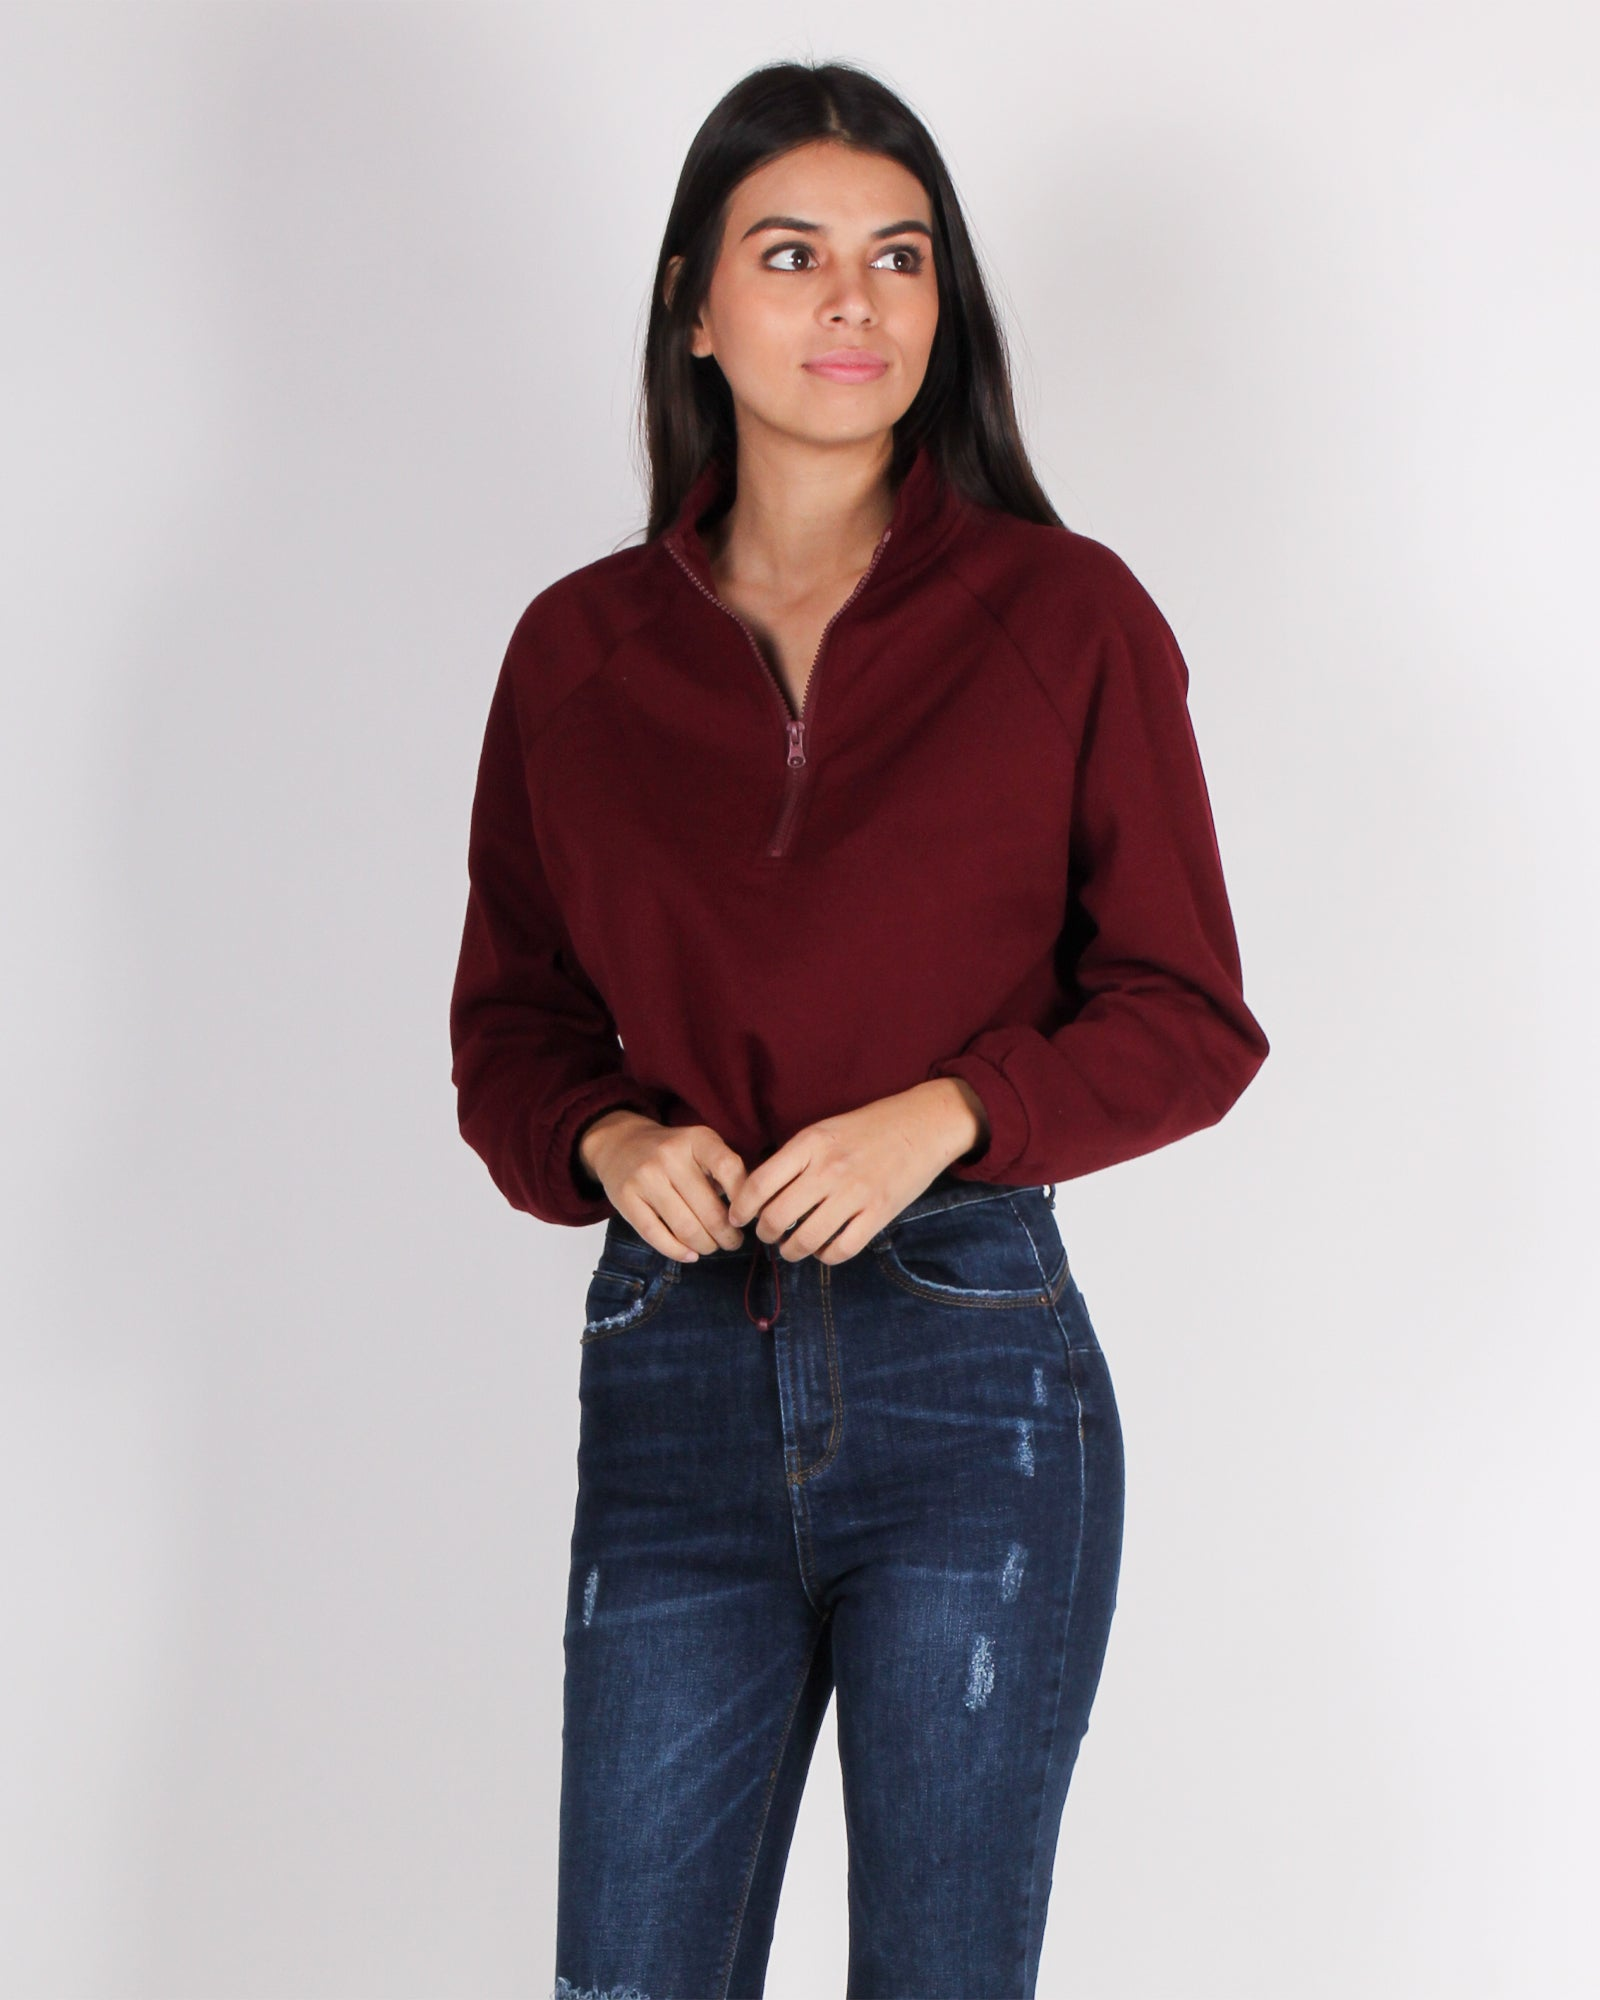 Fashion Q Shop Q Persistence Wins the Game Pullover (Burgundy) T11011